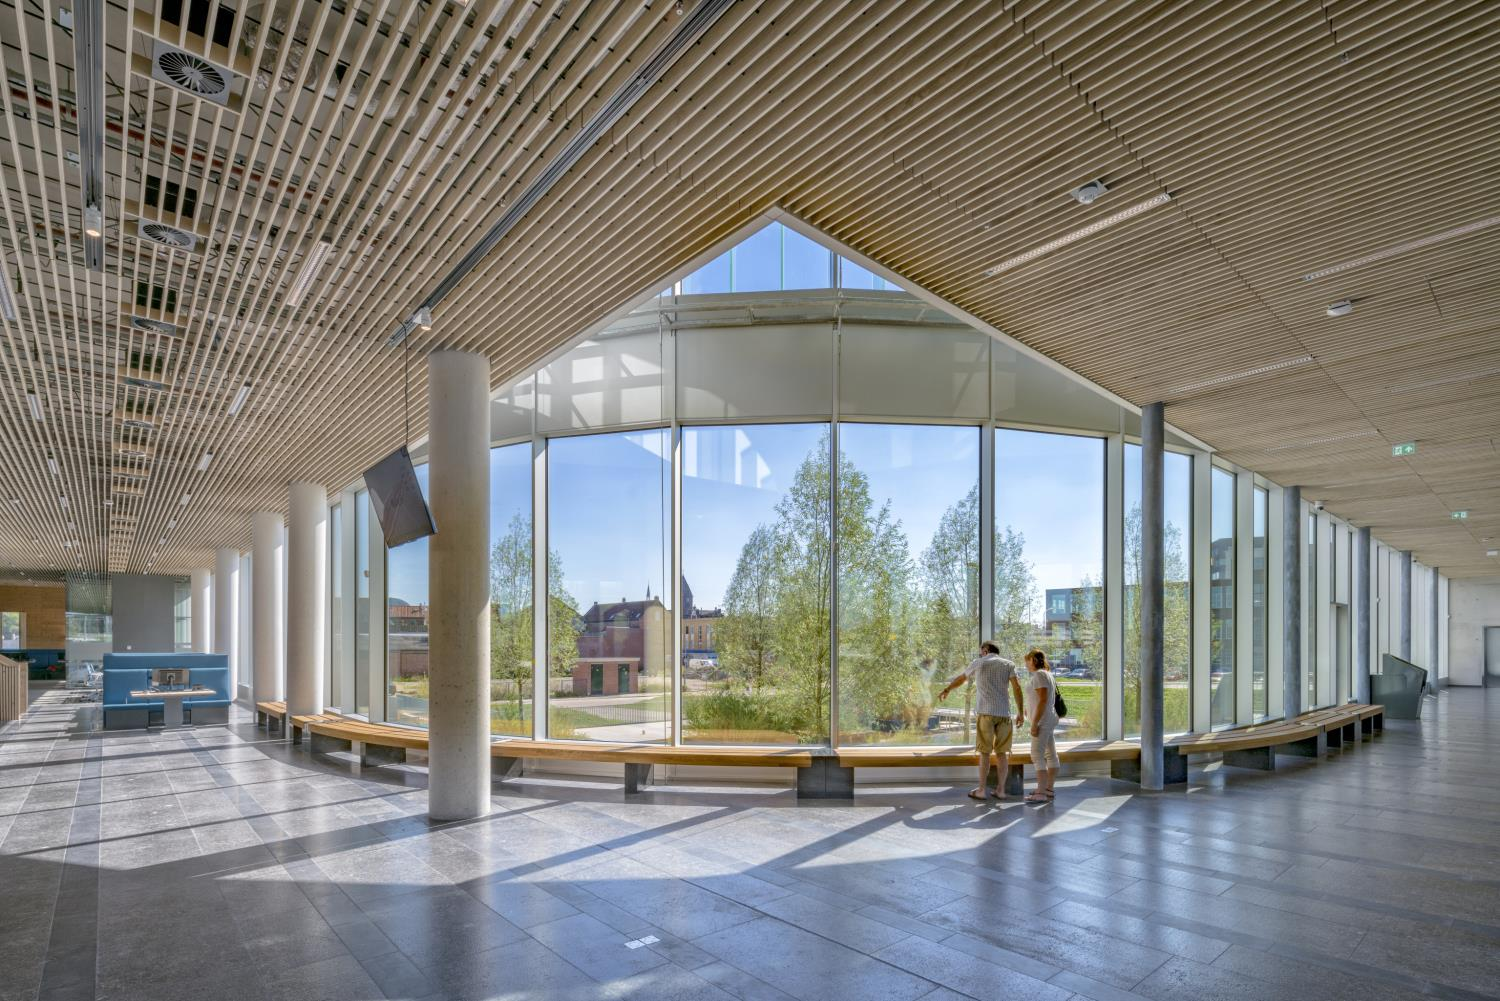 Inside the public hall offers the most space and the best views